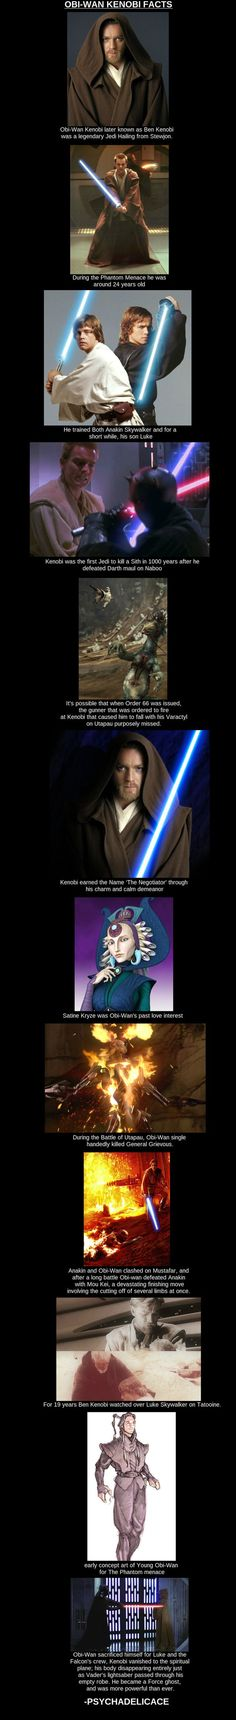 Obi-Wan Kenobi // funny pictures - funny photos - funny images - funny pics - funny quotes - #lol #humor #funnypictures: